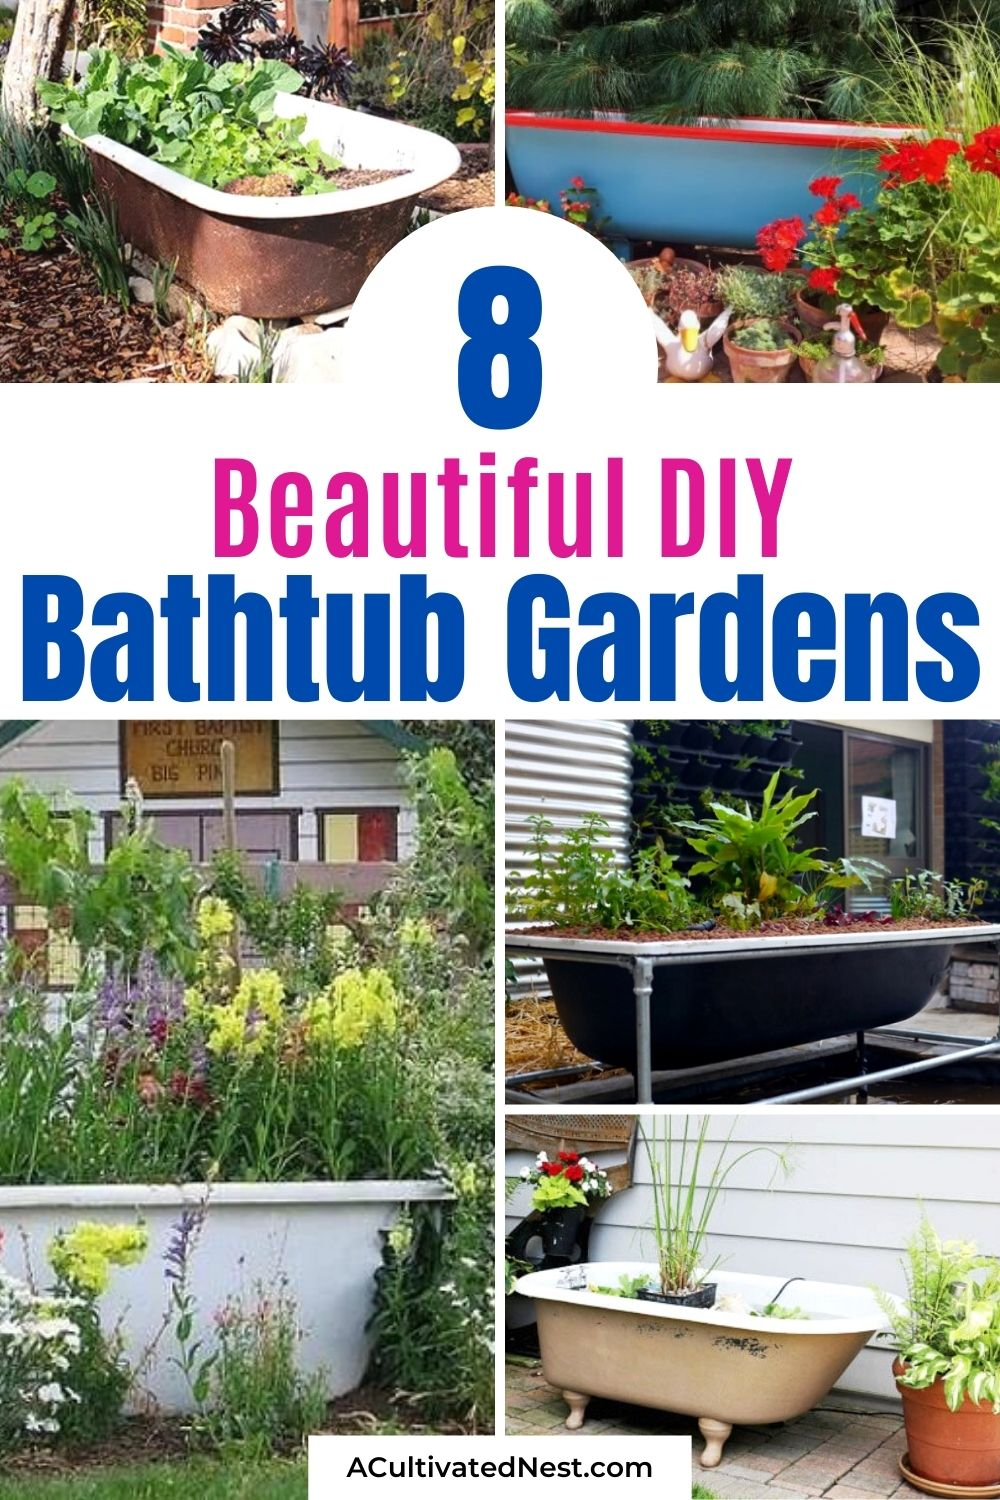 Using An Old Bathtub As A Container In Your Garden- Using an old bathtub as a container garden is a lovely way to enhance your garden's design! Bathtub container gardens are easy to make, too, and hold a lot of plants! | upcycle bathtub, recycle bathtub, ways to use a vintage bathtub, #gardenDIY #containerGarden #gardeningTips #upcycle #ACultivatedNest